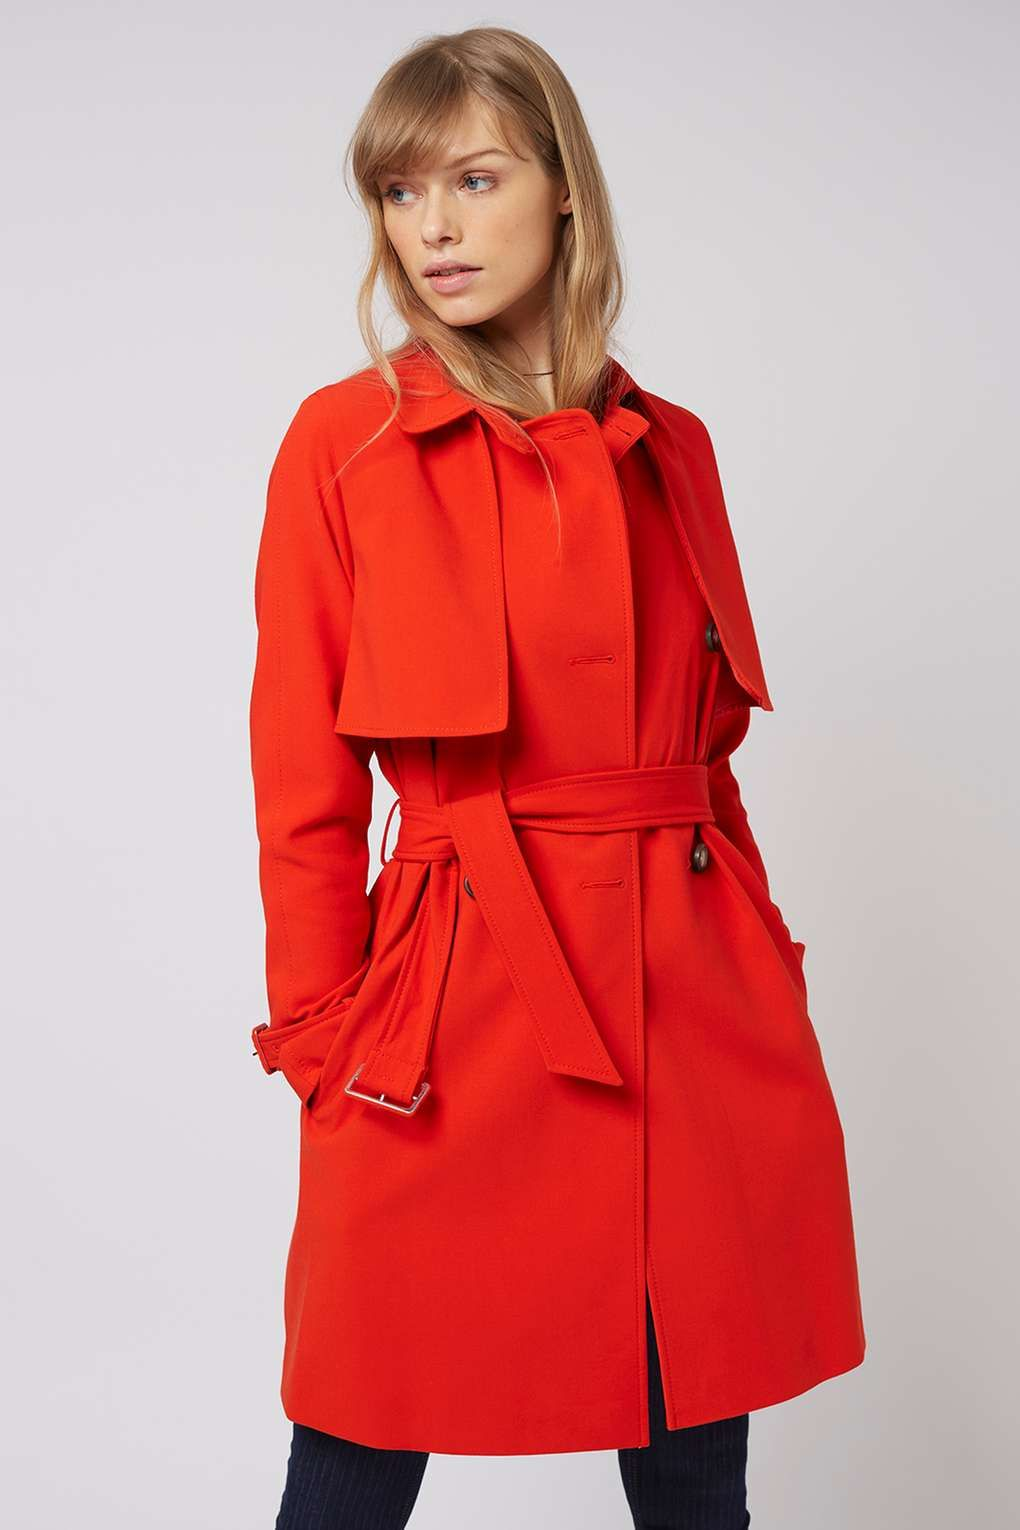 Tall lightweight belted truster tall girl fashion girl fashion